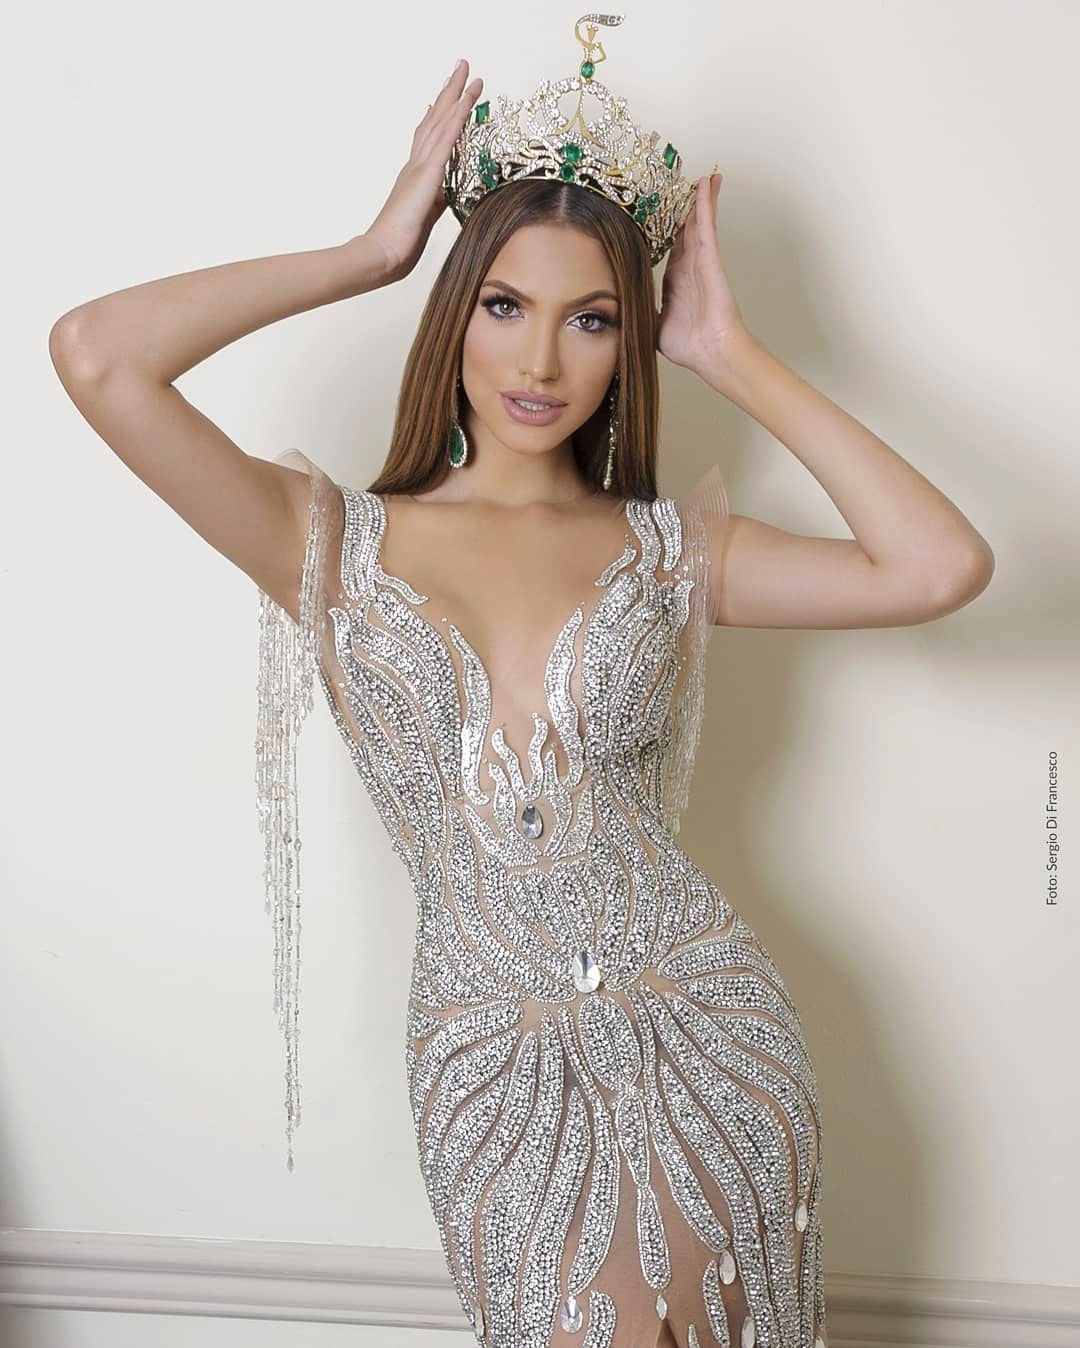 Official Thread of MISS GRAND INTERNATIONAL 2019 - Lourdes Valentina Figuera - VENEZUELA - Page 2 74788725-2632537646769215-8962294516962820096-o